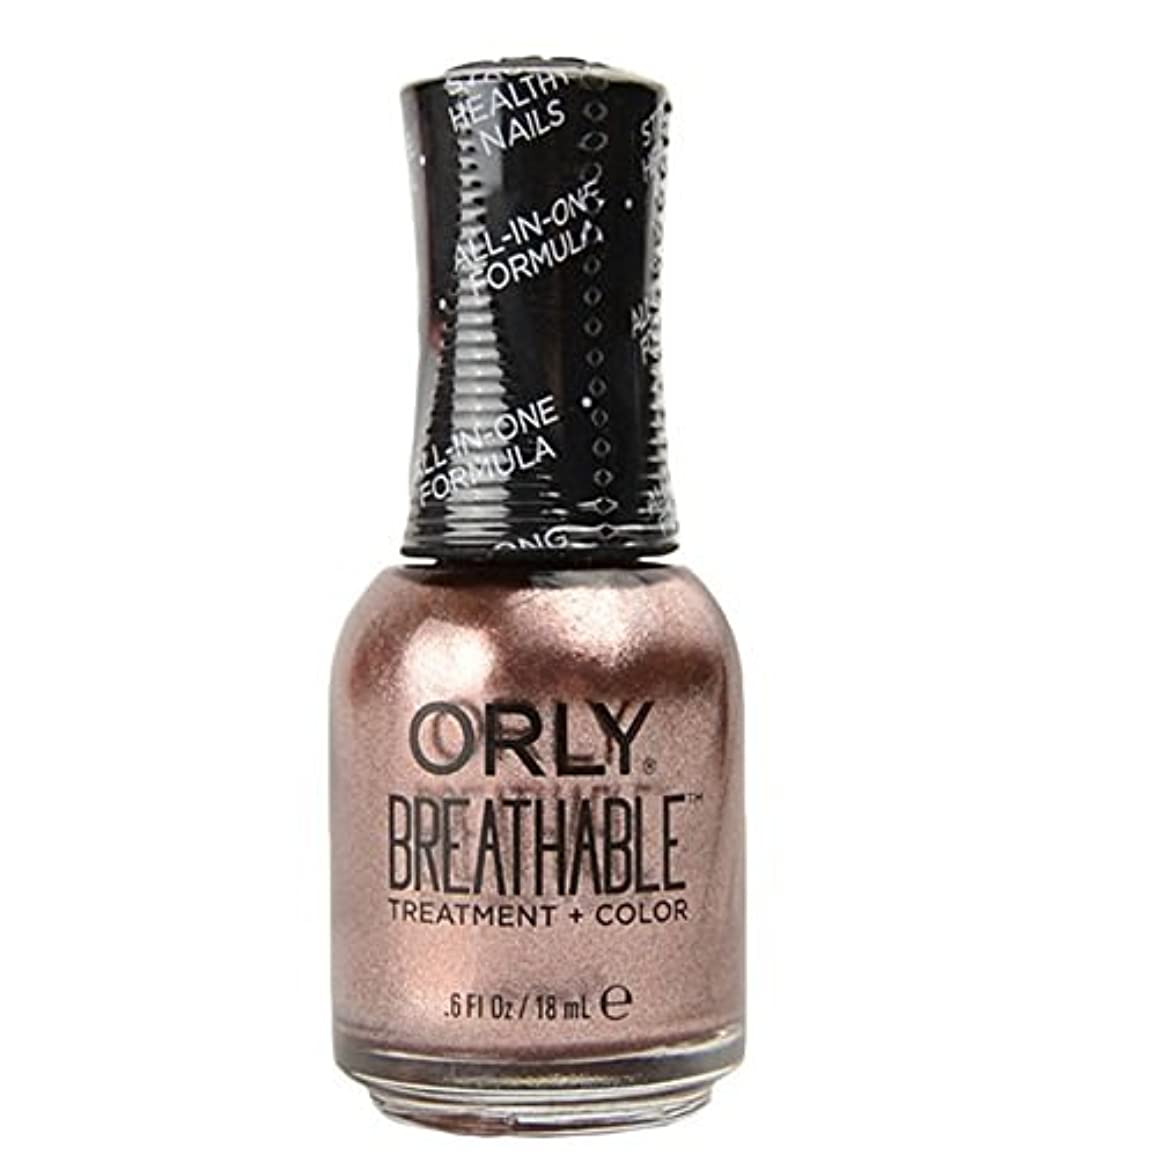 シャー良心自動Orly Breathable Treatment + Color Nail Lacquer - Fairy Godmother - 0.6oz / 18ml